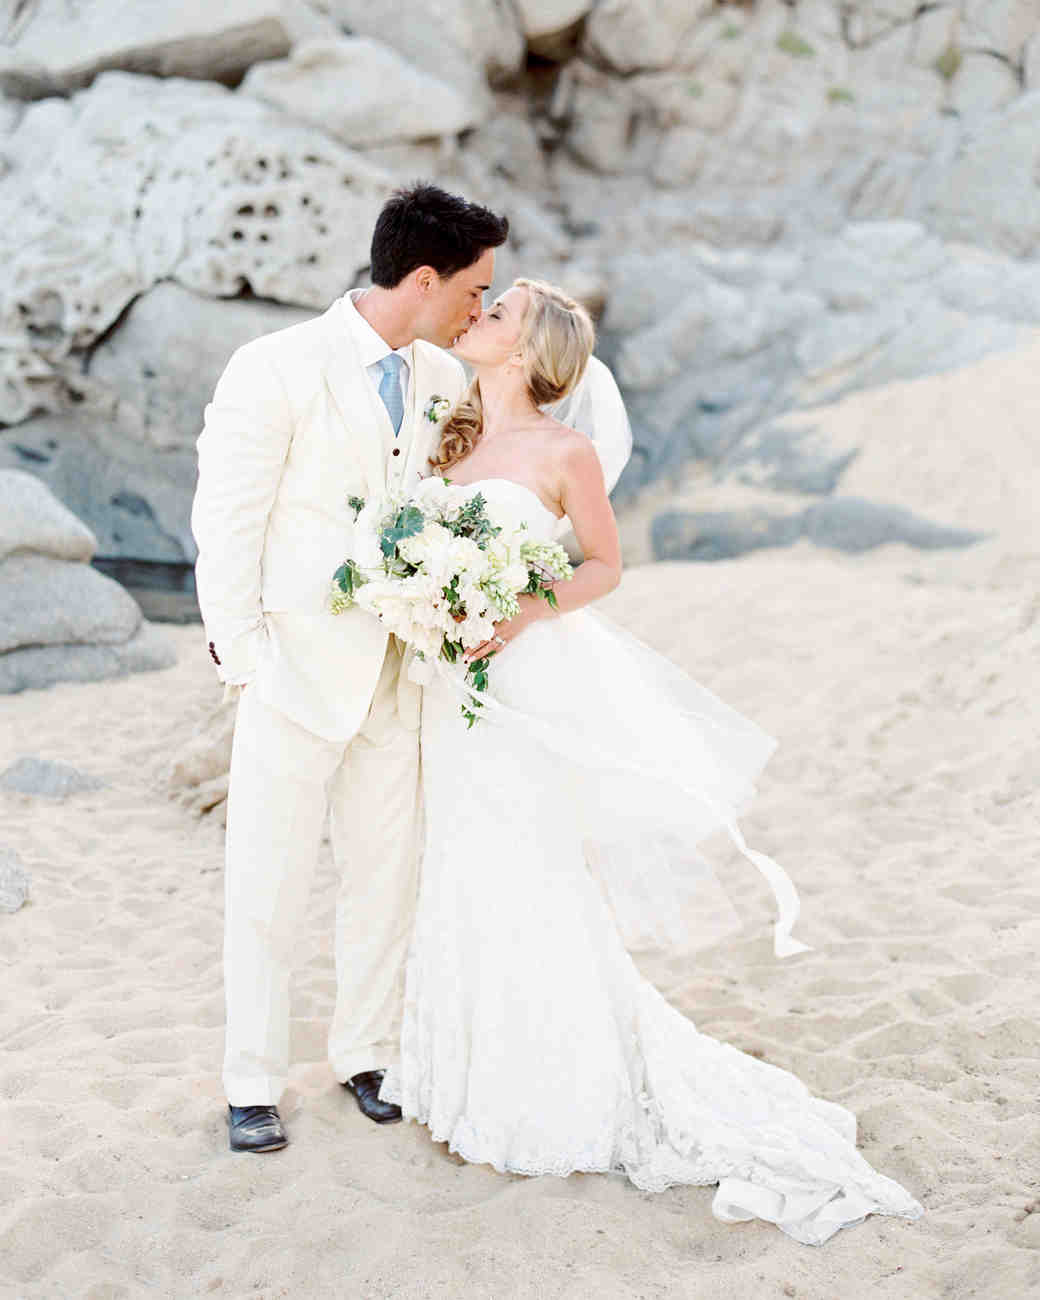 Couple S Wedding Ceremony And Reception Held At The Beach: A Relaxing, Ocean-Front Wedding In Cabo